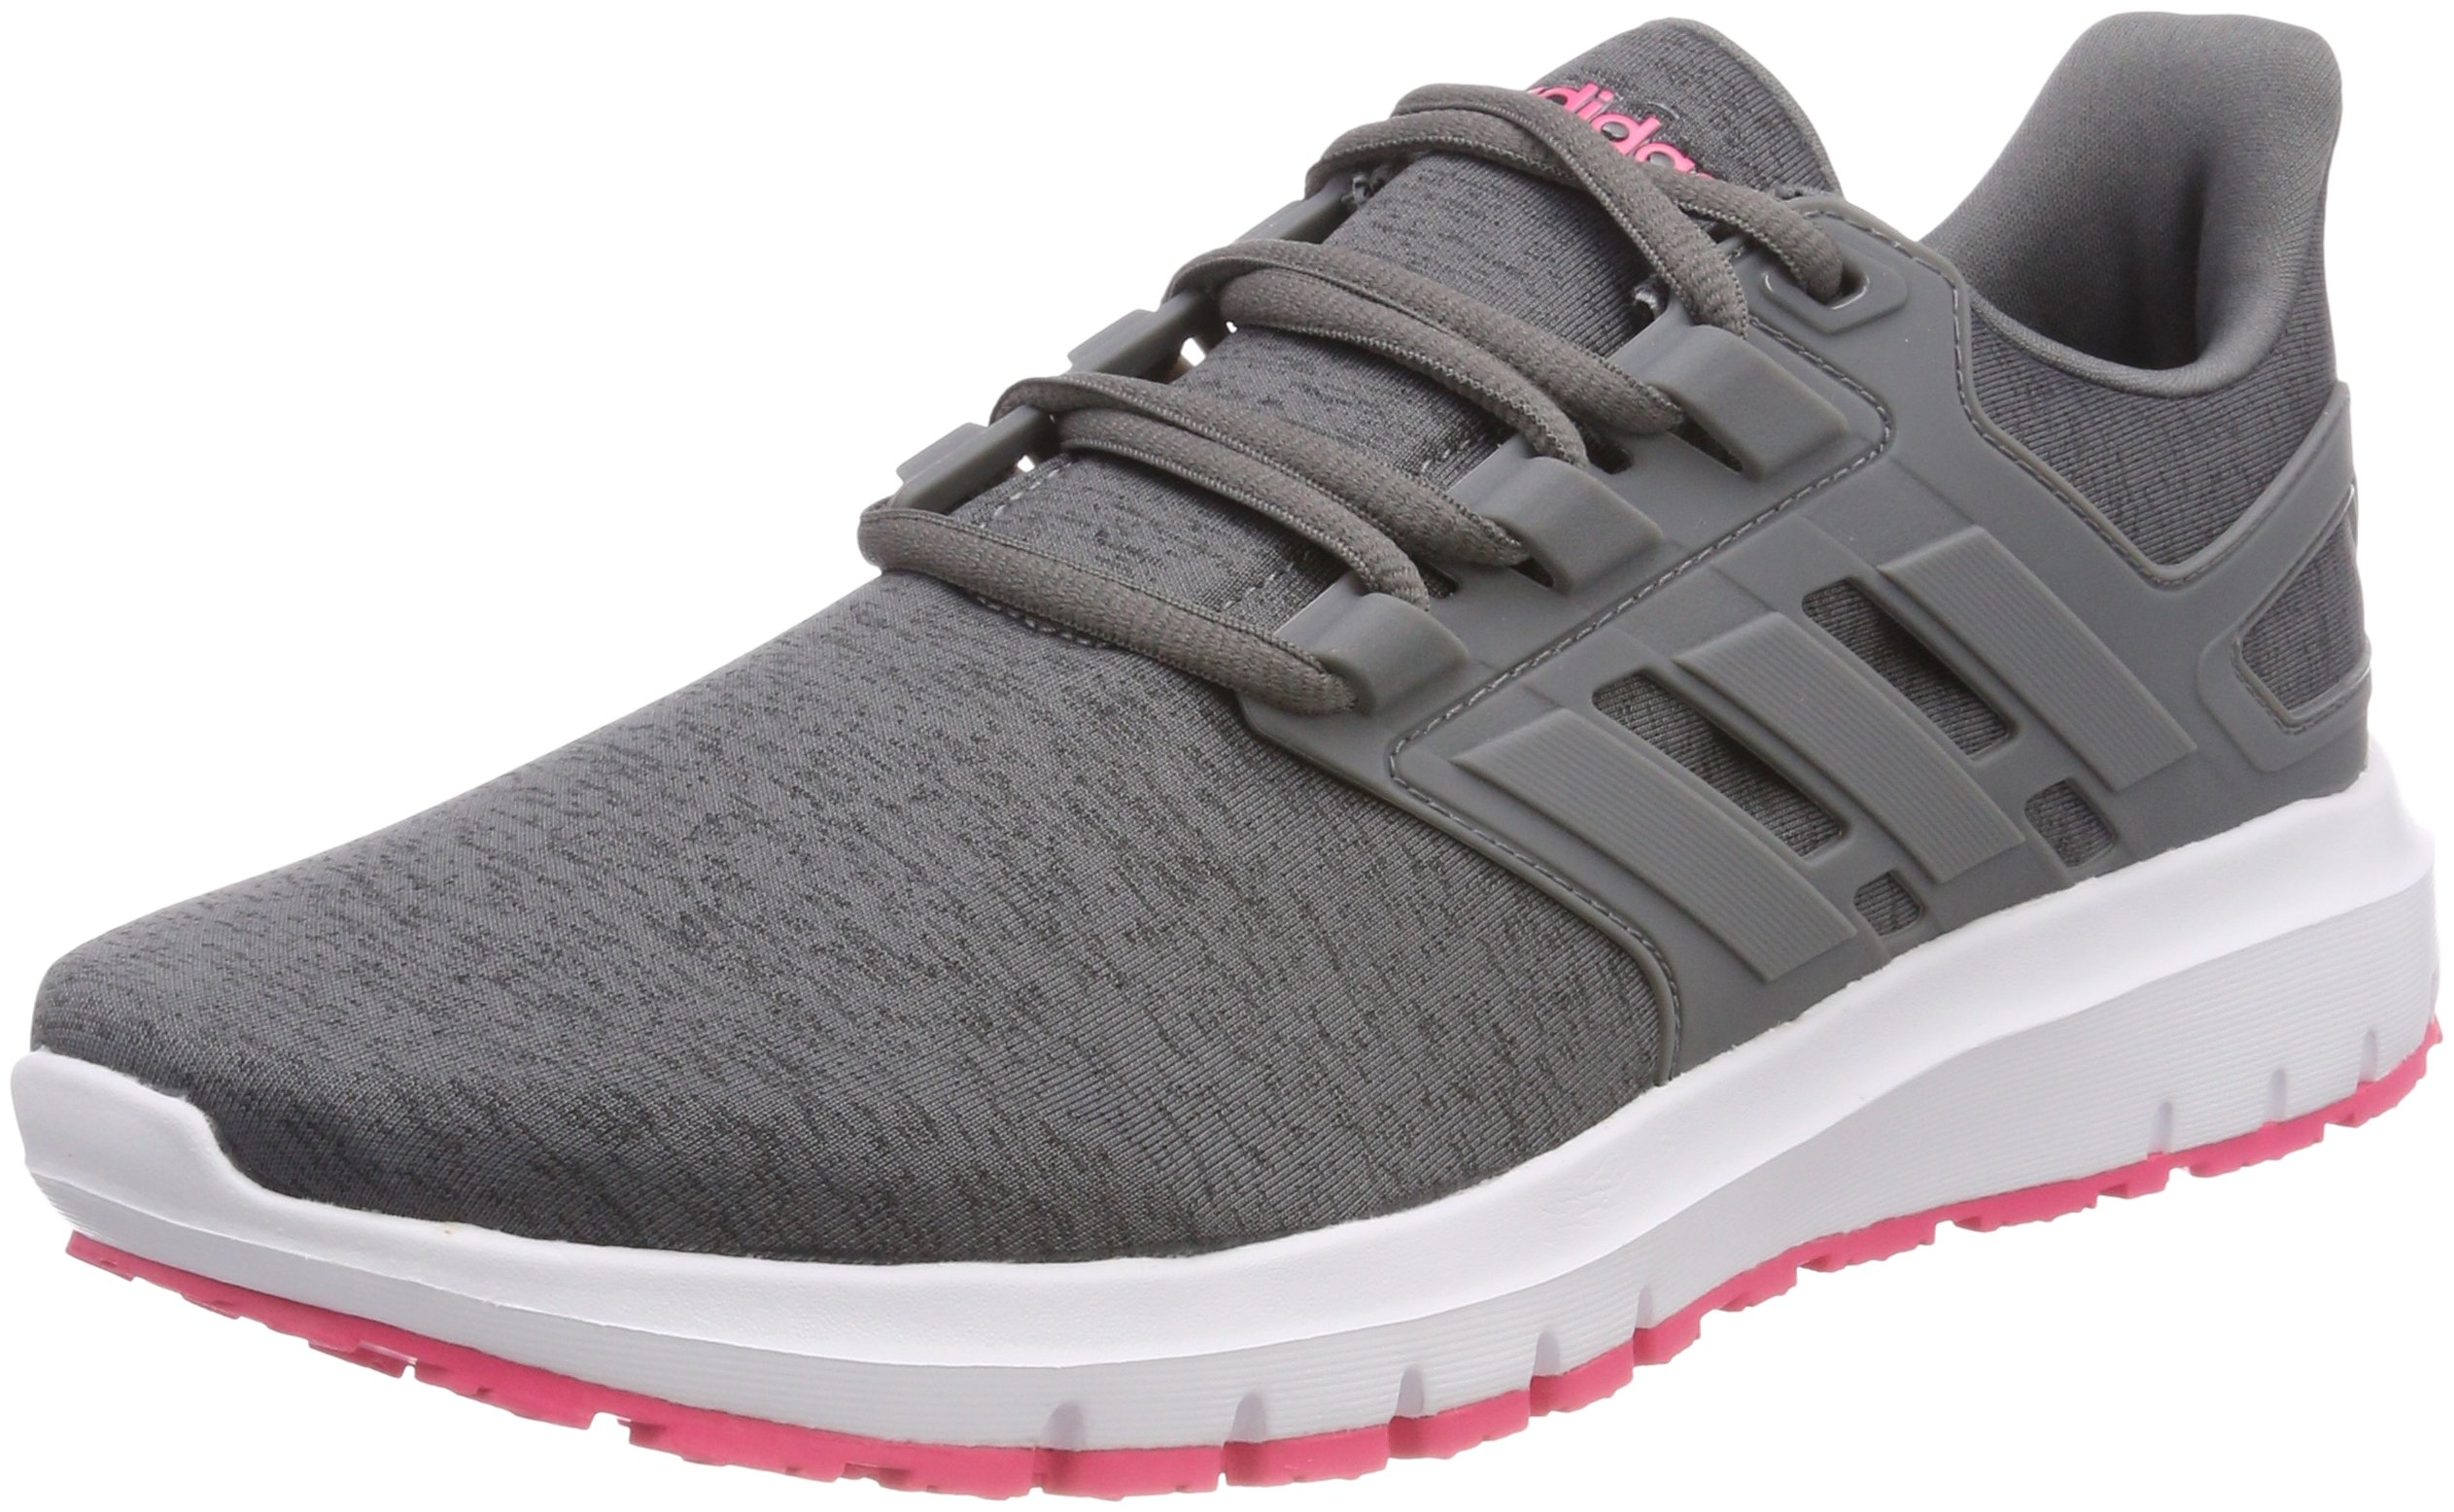 F1739 1 3 Grey One F17 Cloud Adidas Four FemmeGris Energy Eu grey 2Chaussures Running De Ybfv7gy6